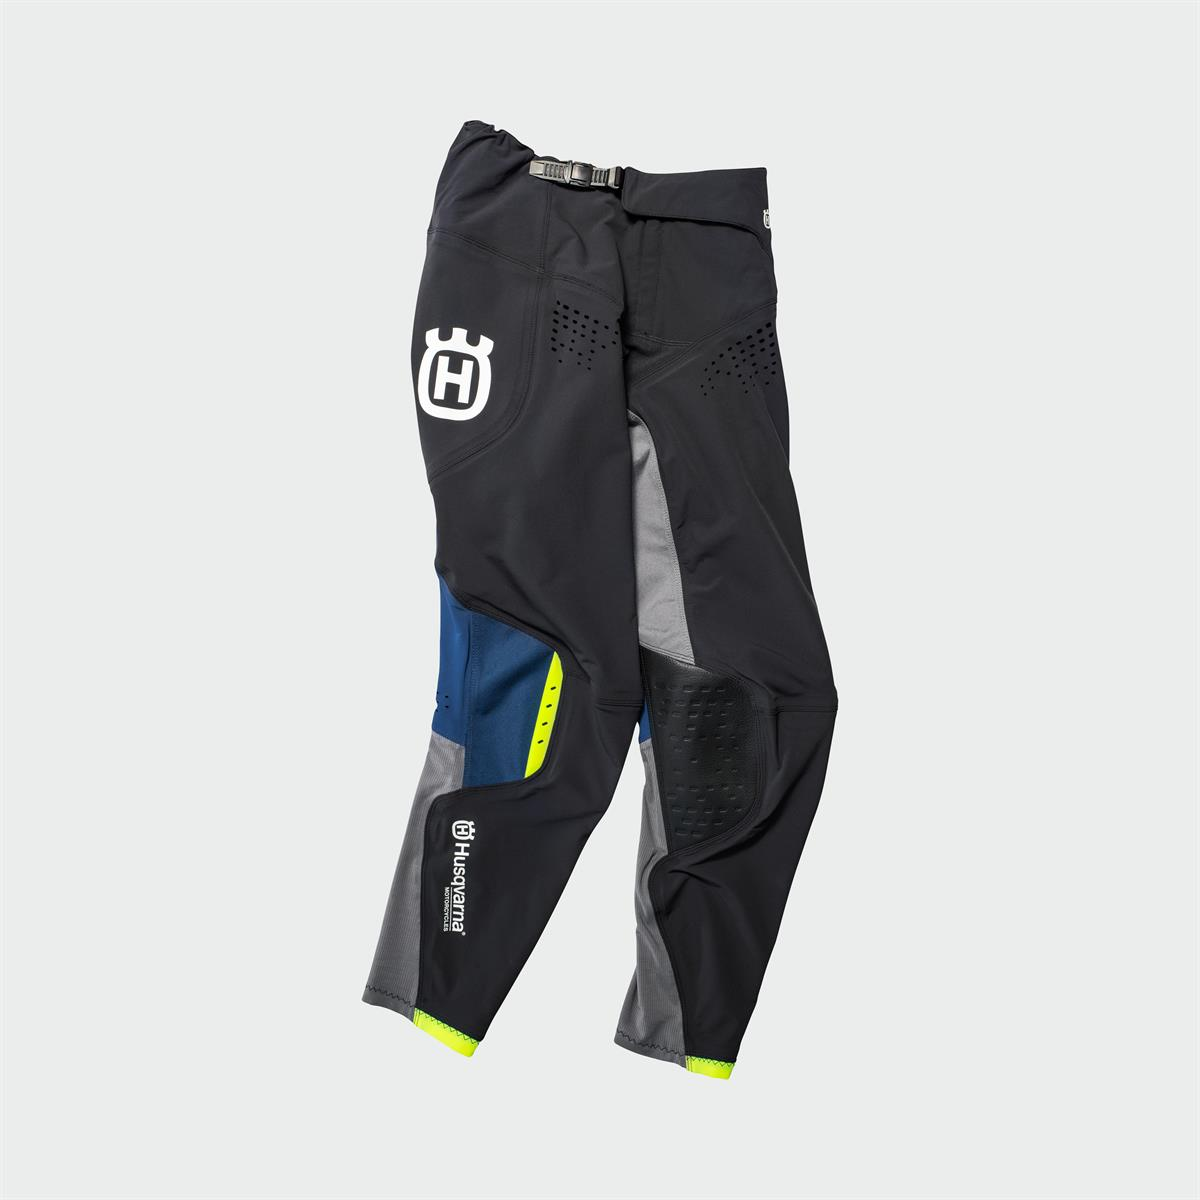 Husqvarna Functional Clothing - RAILED PANTS-1